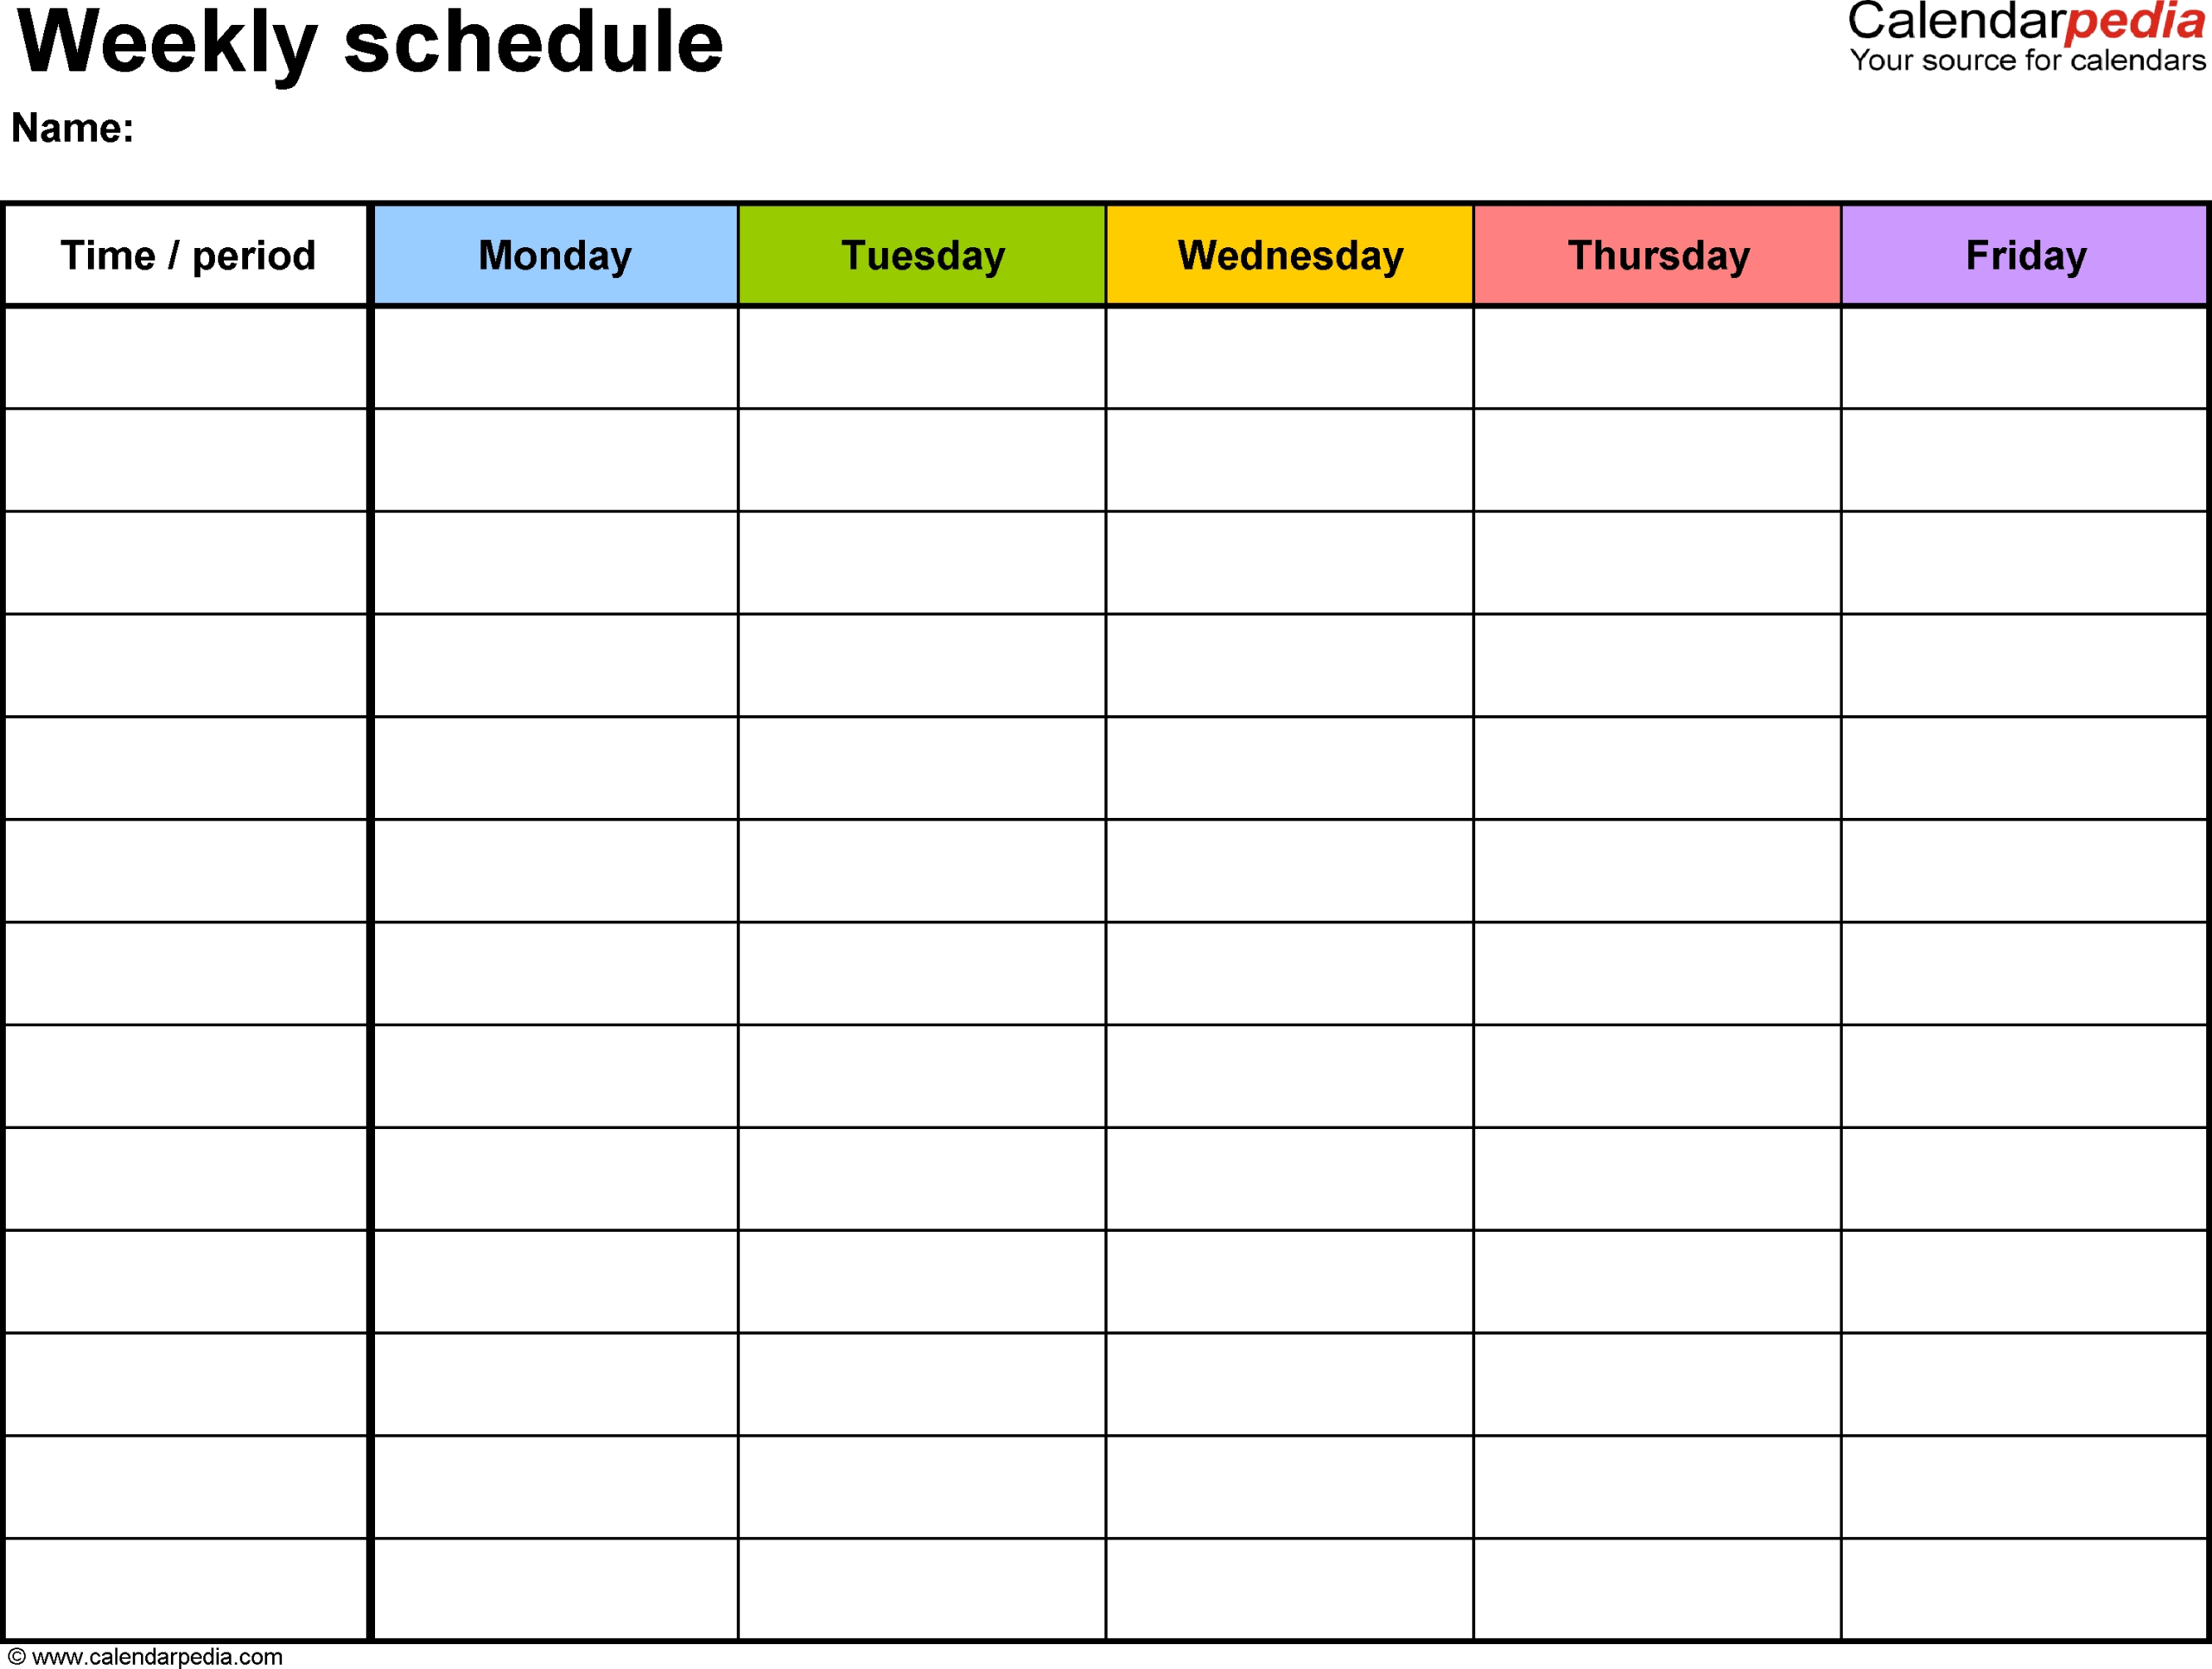 Printable Weekly Schedule With Hours Monday To Friday  Monday Through Friday Schedule